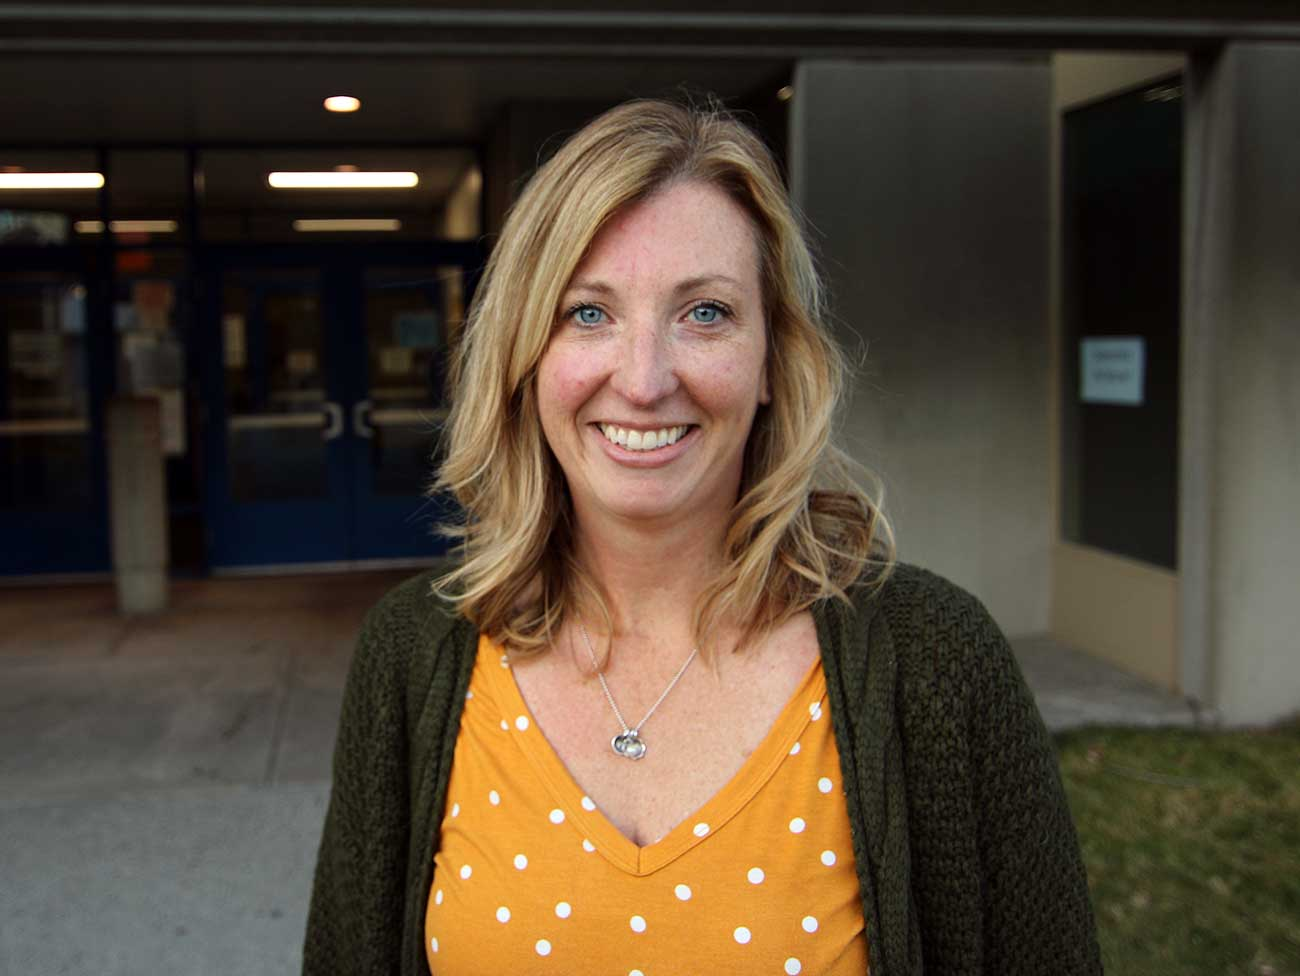 Smiling Rachel Sherwood, principal of Bemiss Elementary School in Spokane, Washington.